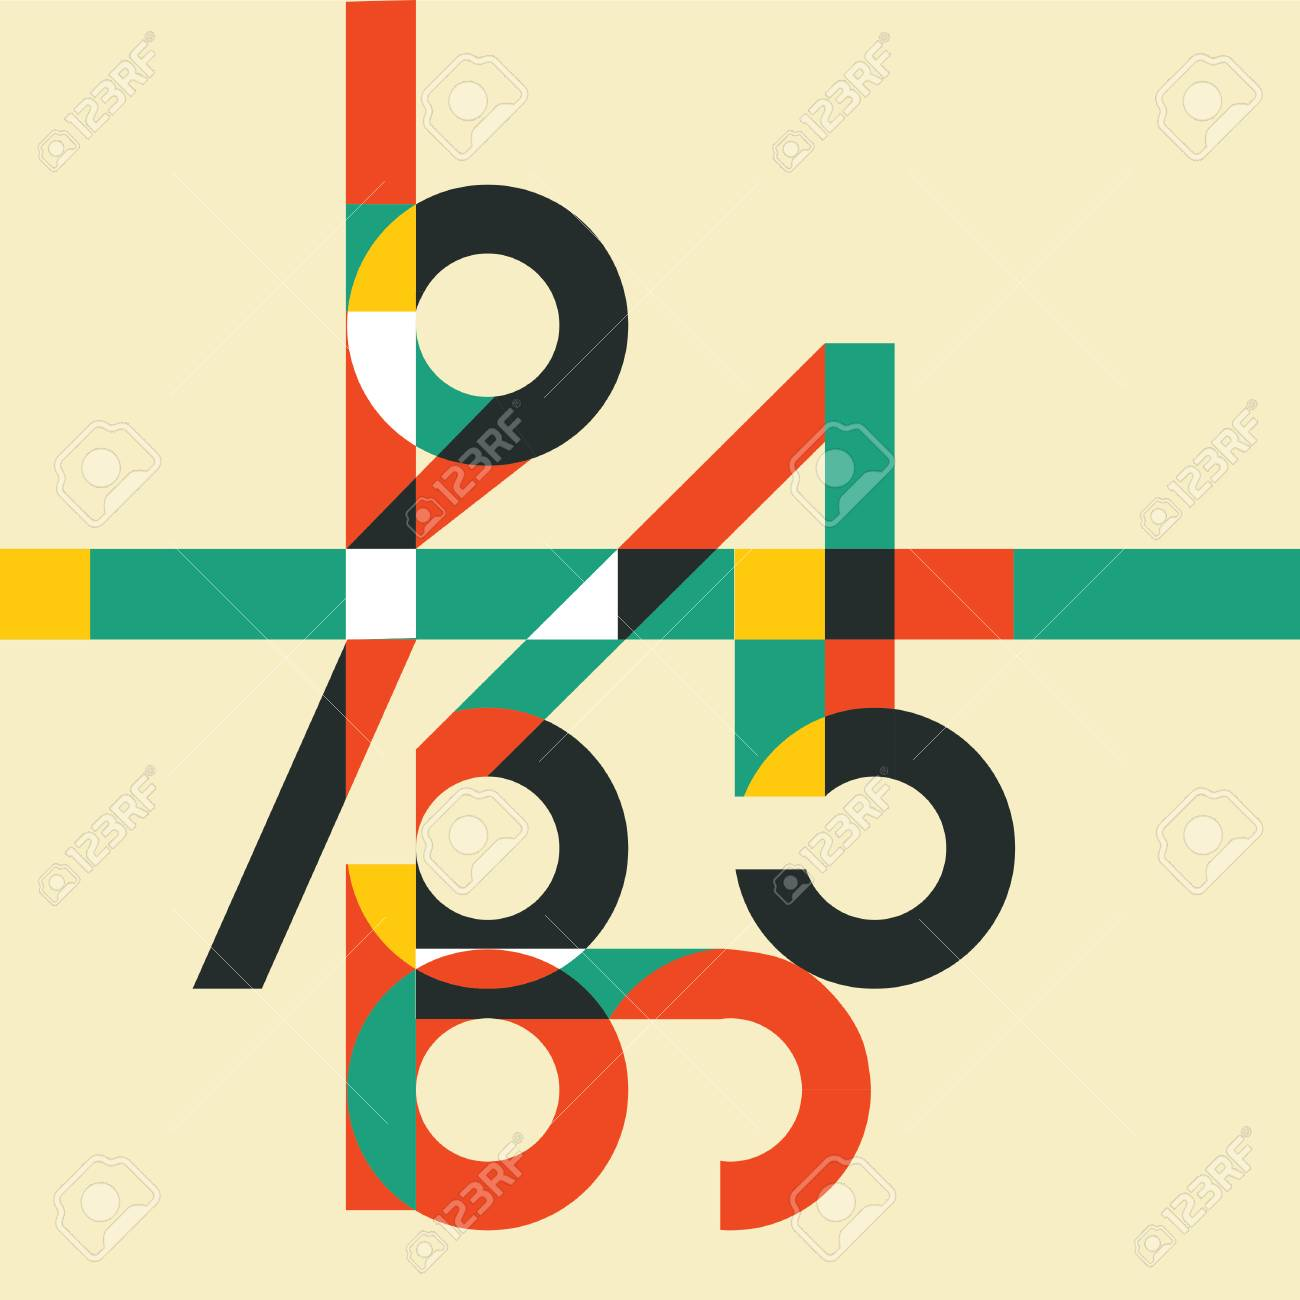 Mathematics Background With Colorful Numbers Abstract Math Symbols